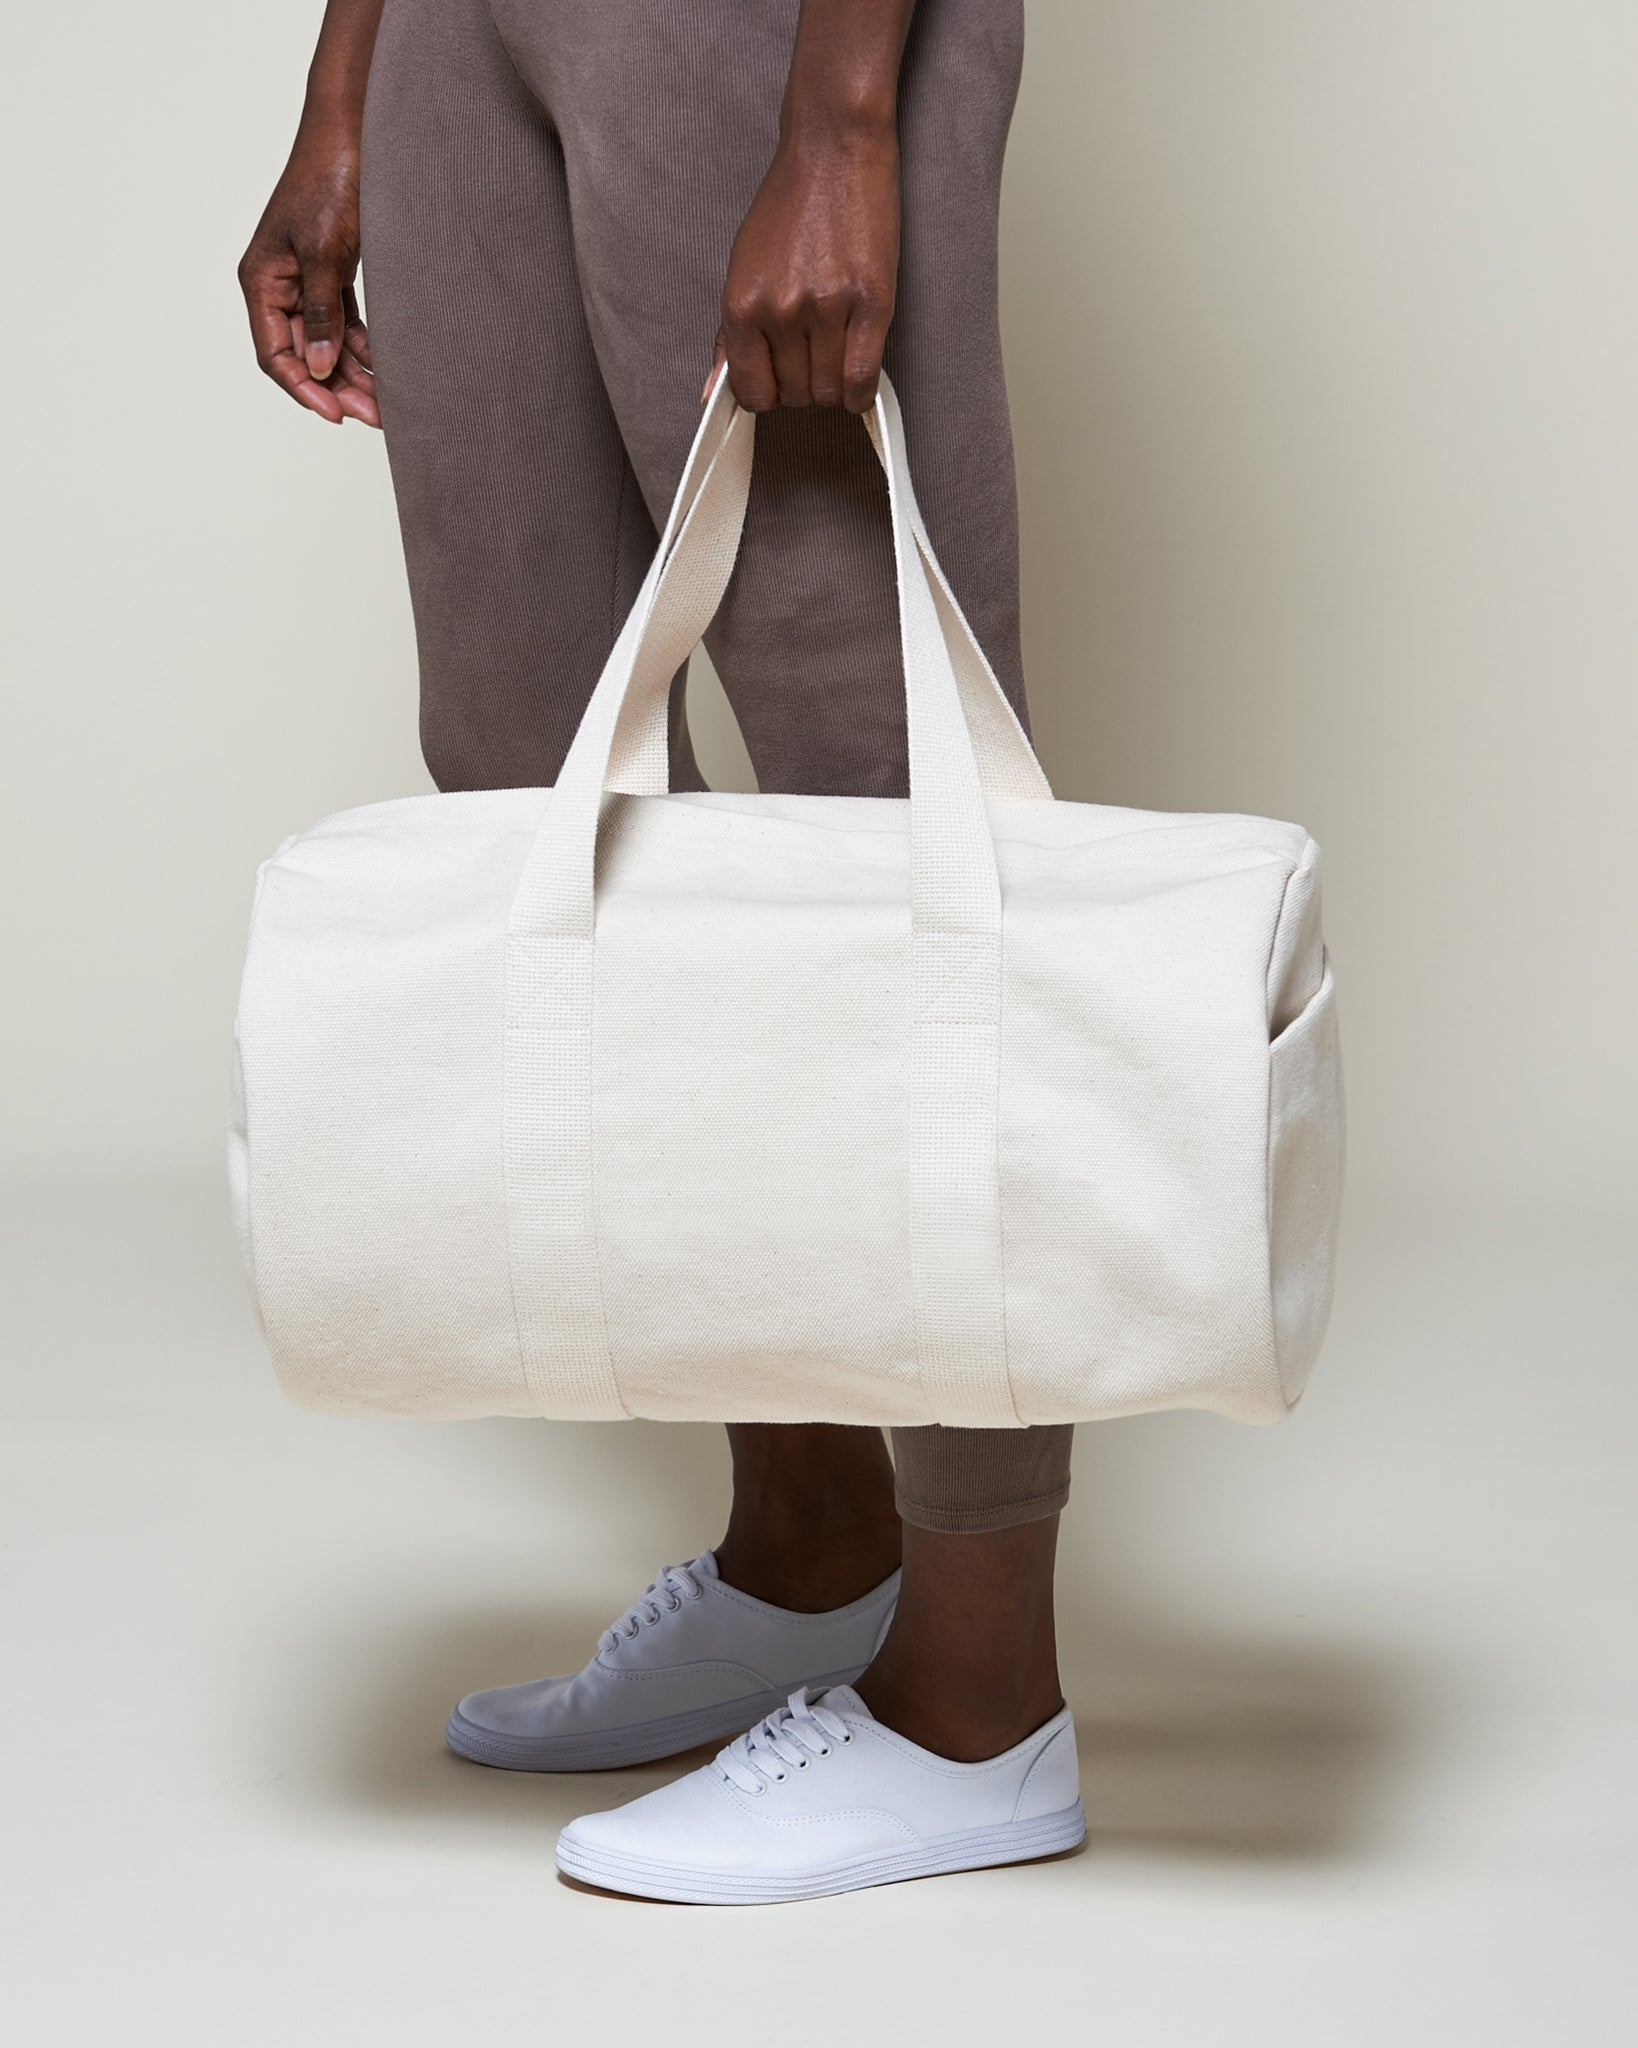 The Duffi Bag